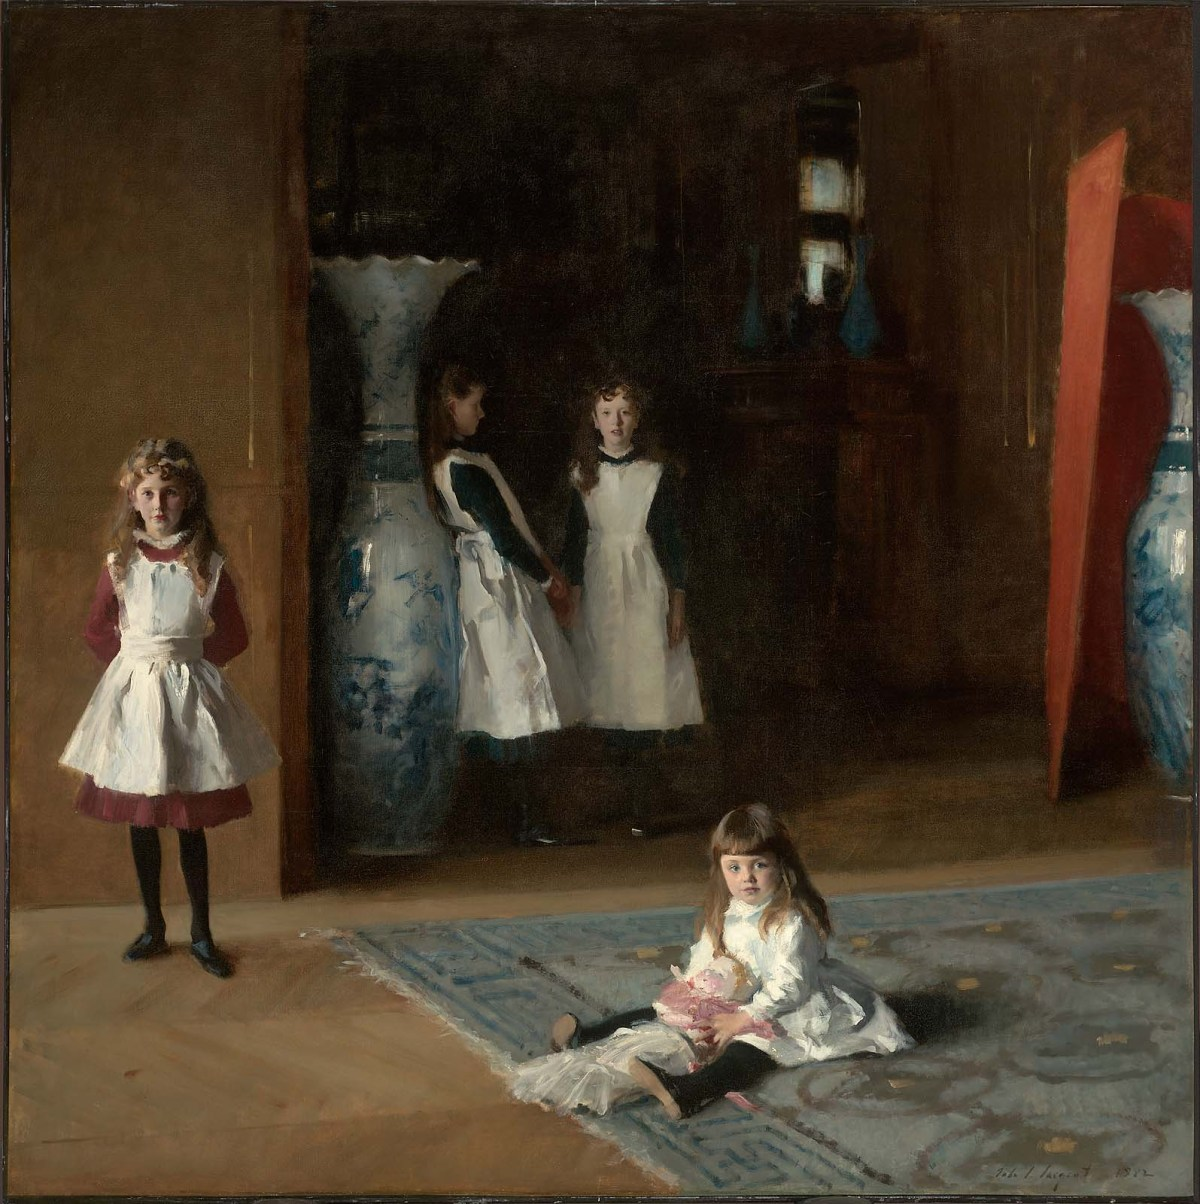 The Daughters of Edward Darley Boit by John Singer Sargent